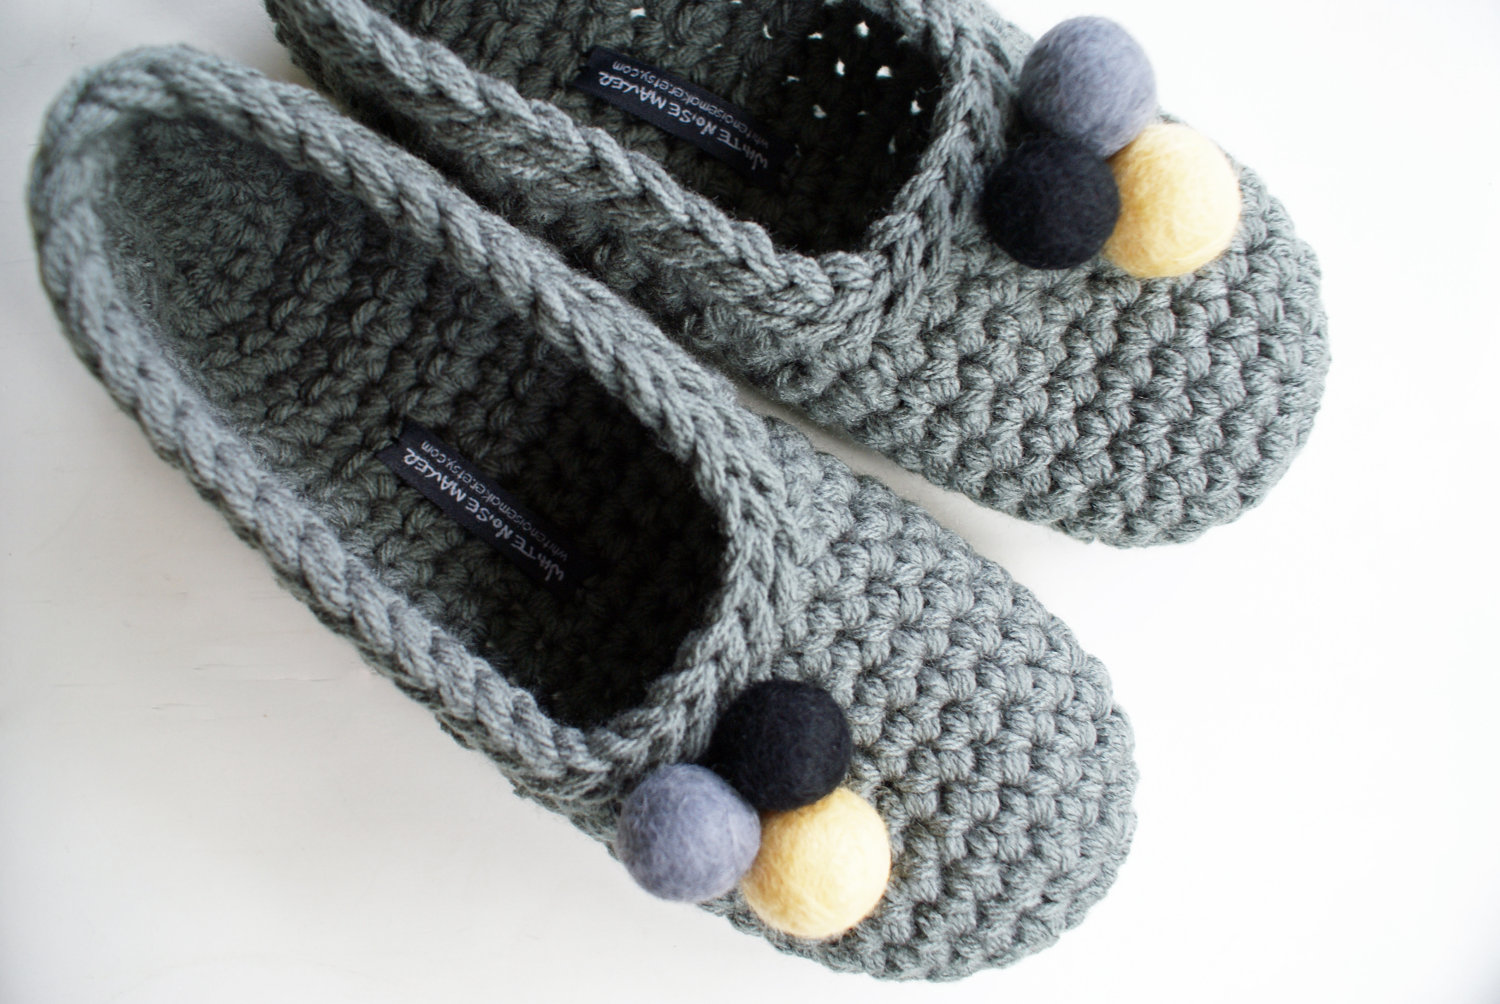 Crochet Slippers : Crocheted Slippers with Felt Embellishments for Women in Grey Felt